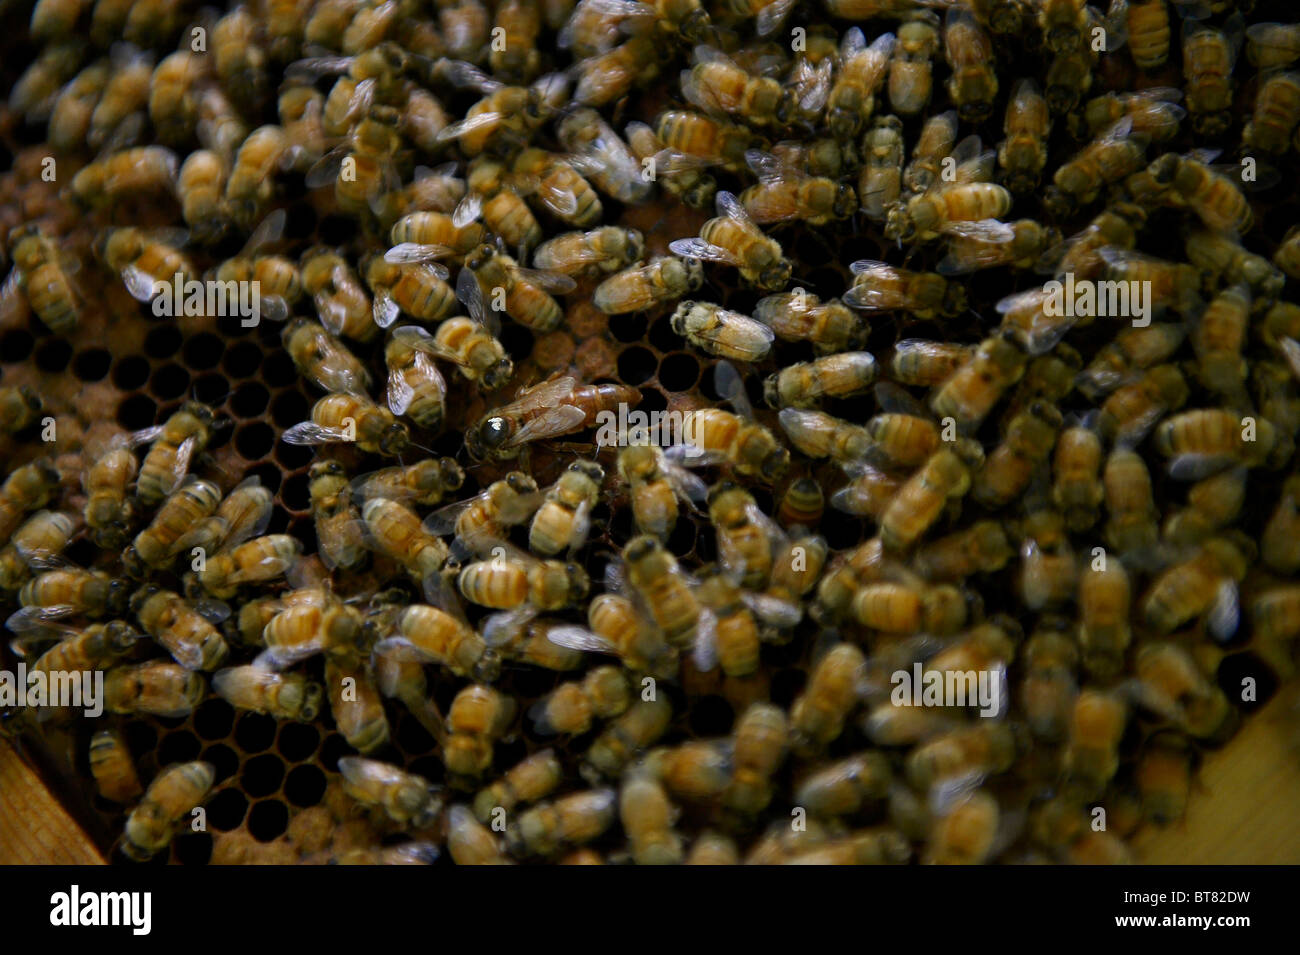 A Queen bee on a frame of brood from a beehive, surrounded by worker bees. - Stock Image